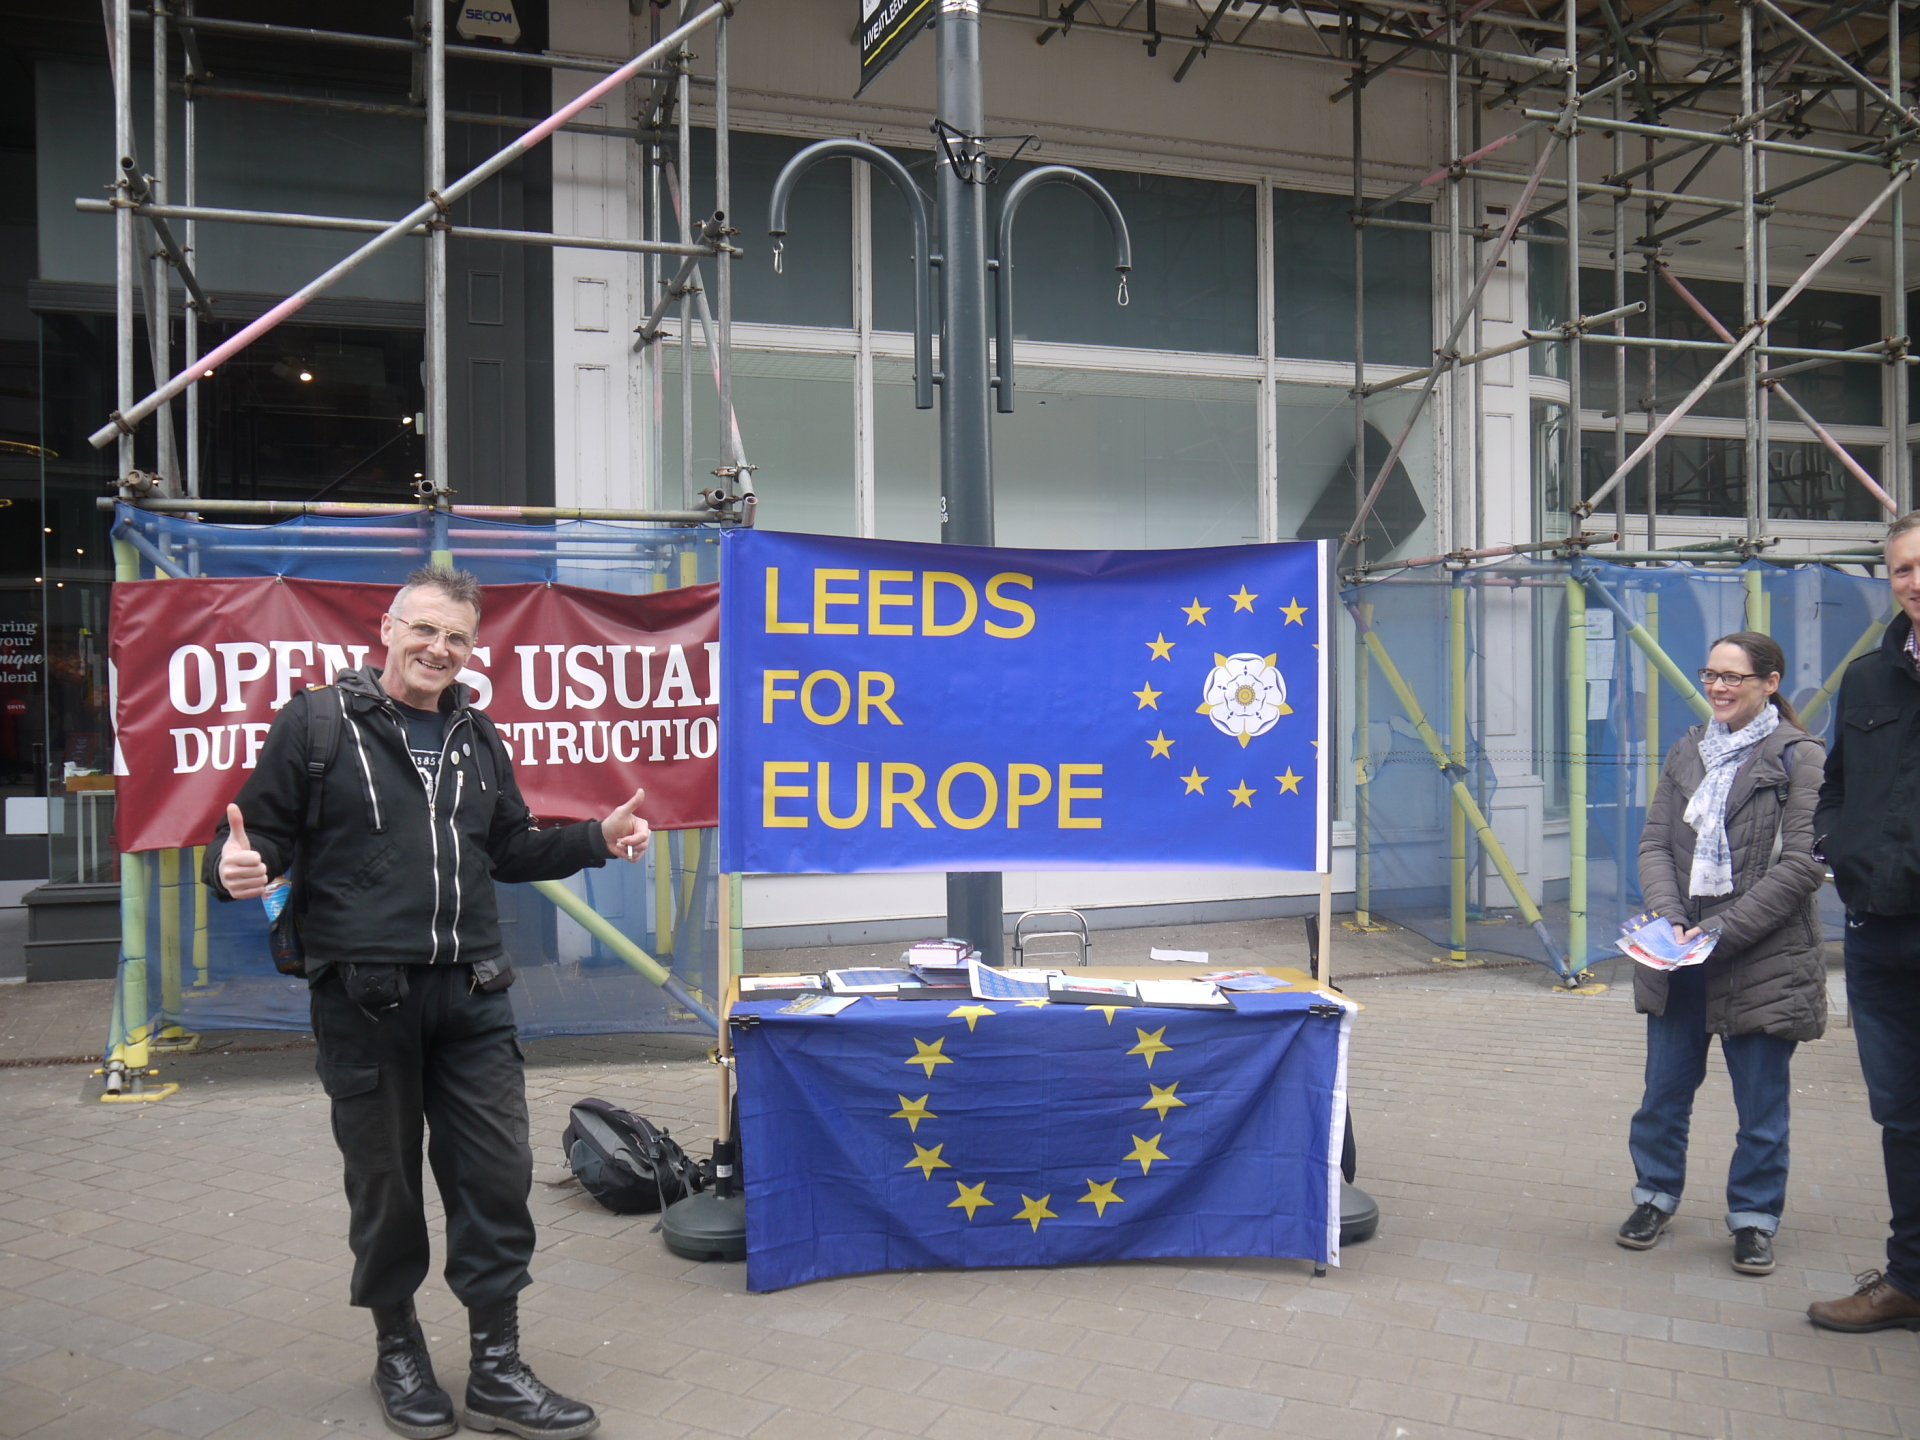 Campaign Stall 29th April 2017